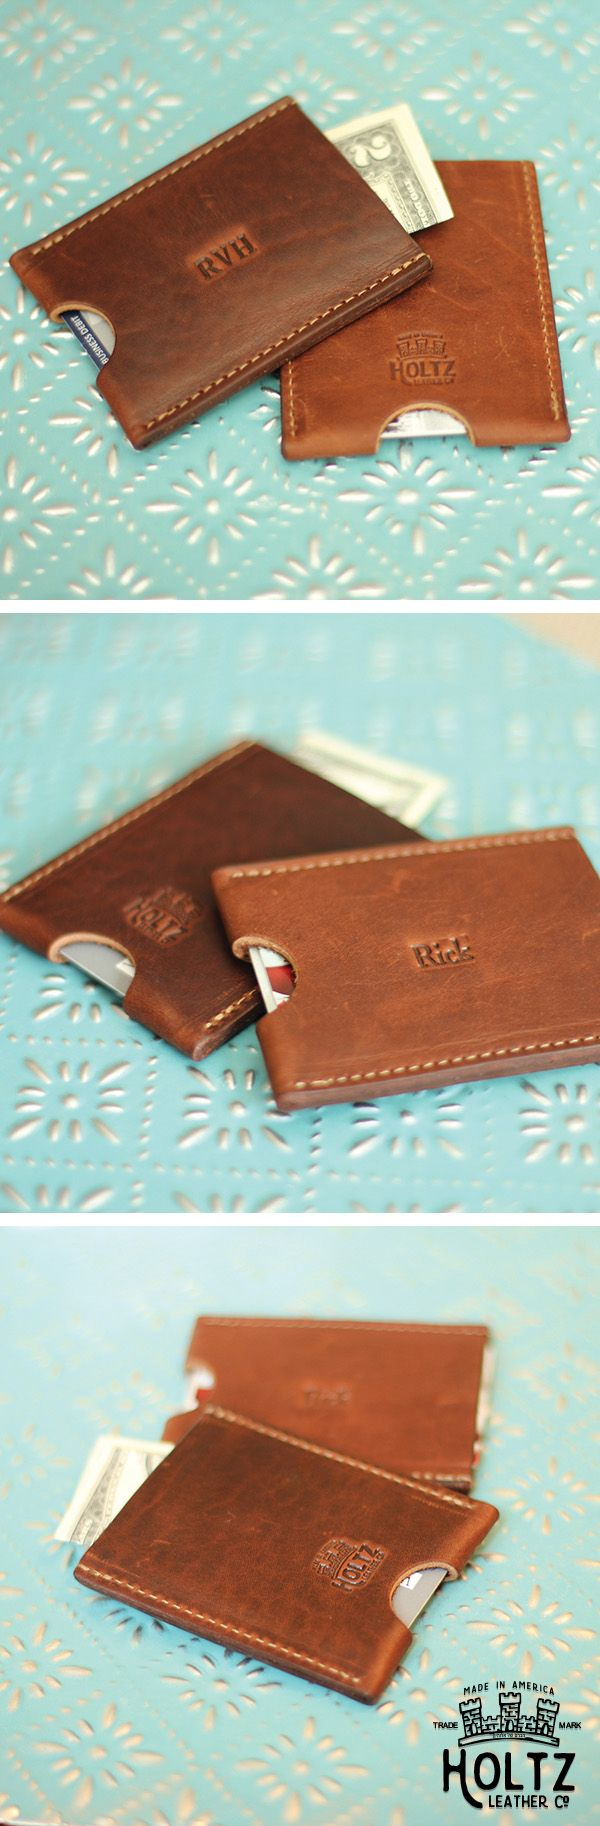 The Jefferson Fine Leather Card Holder Wallet is a great minimalist wallet. It…